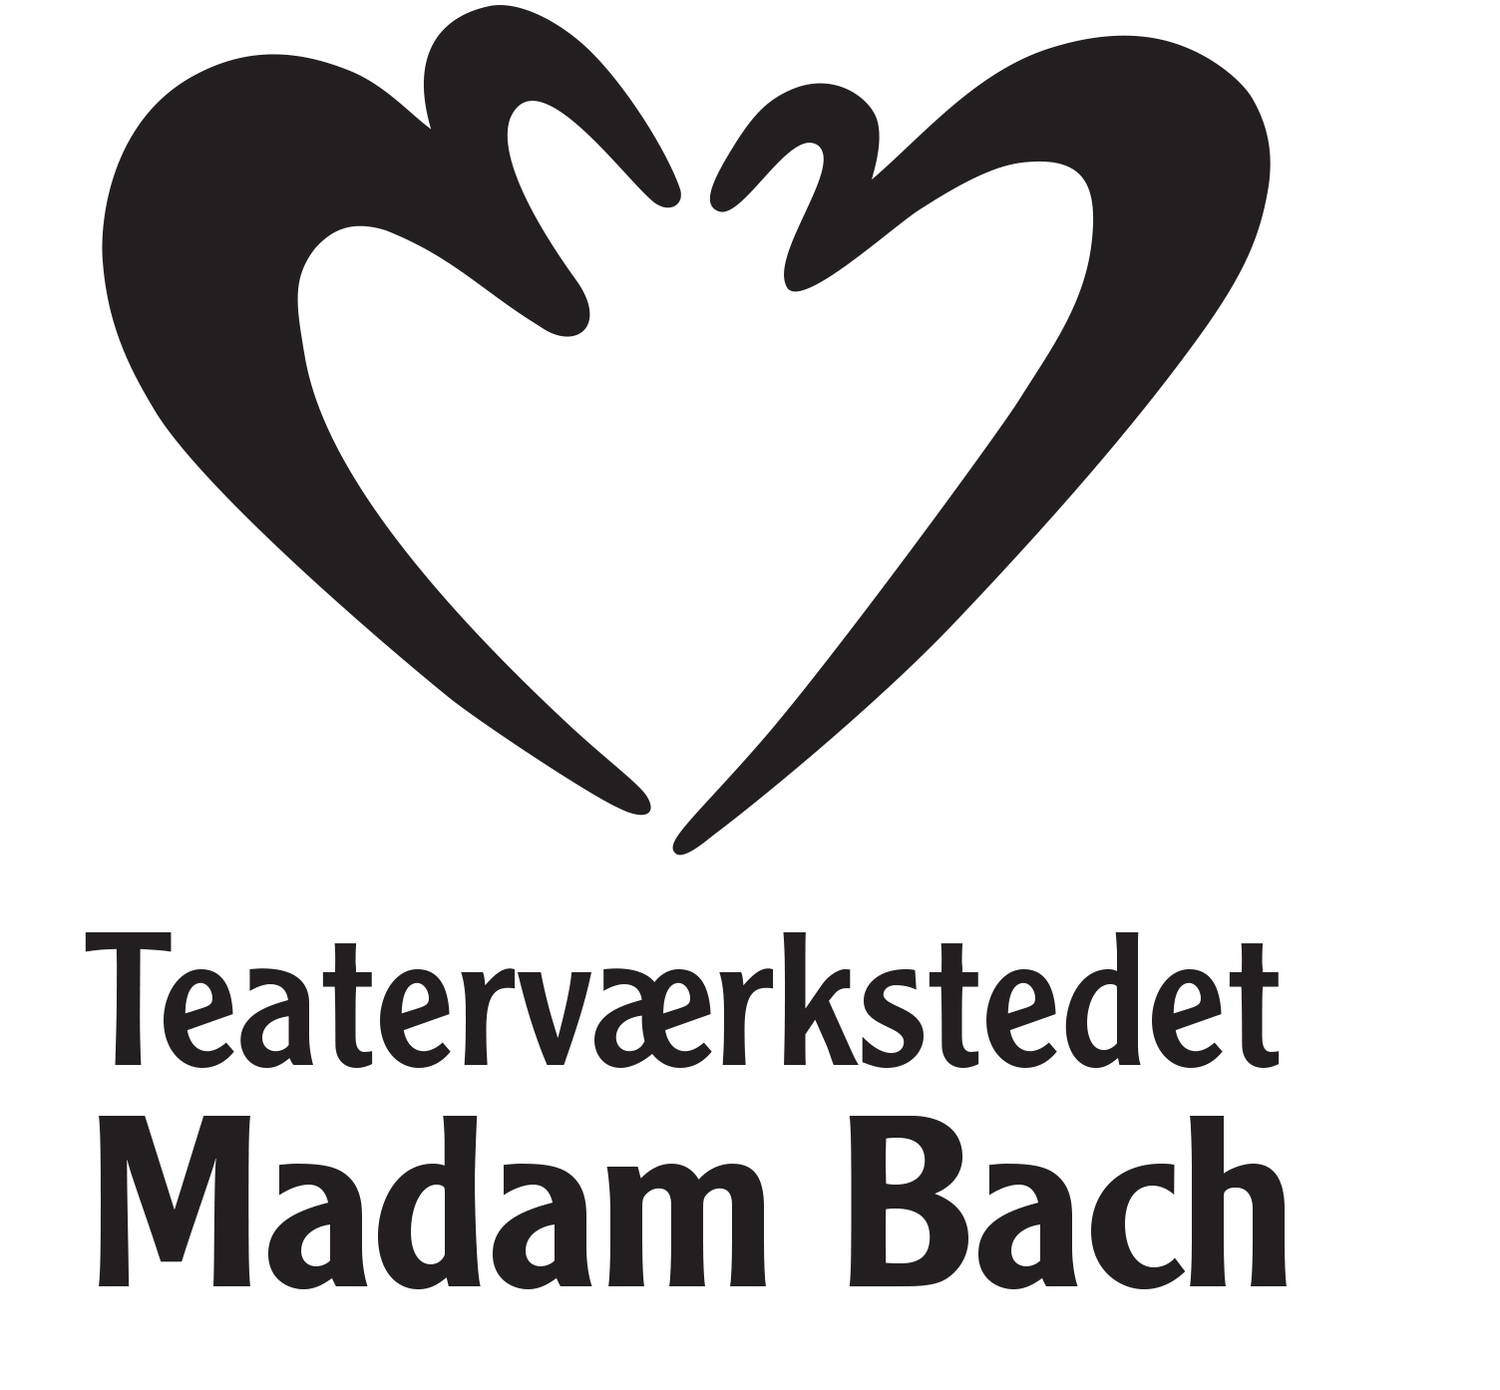 /Theatre Madam Bach